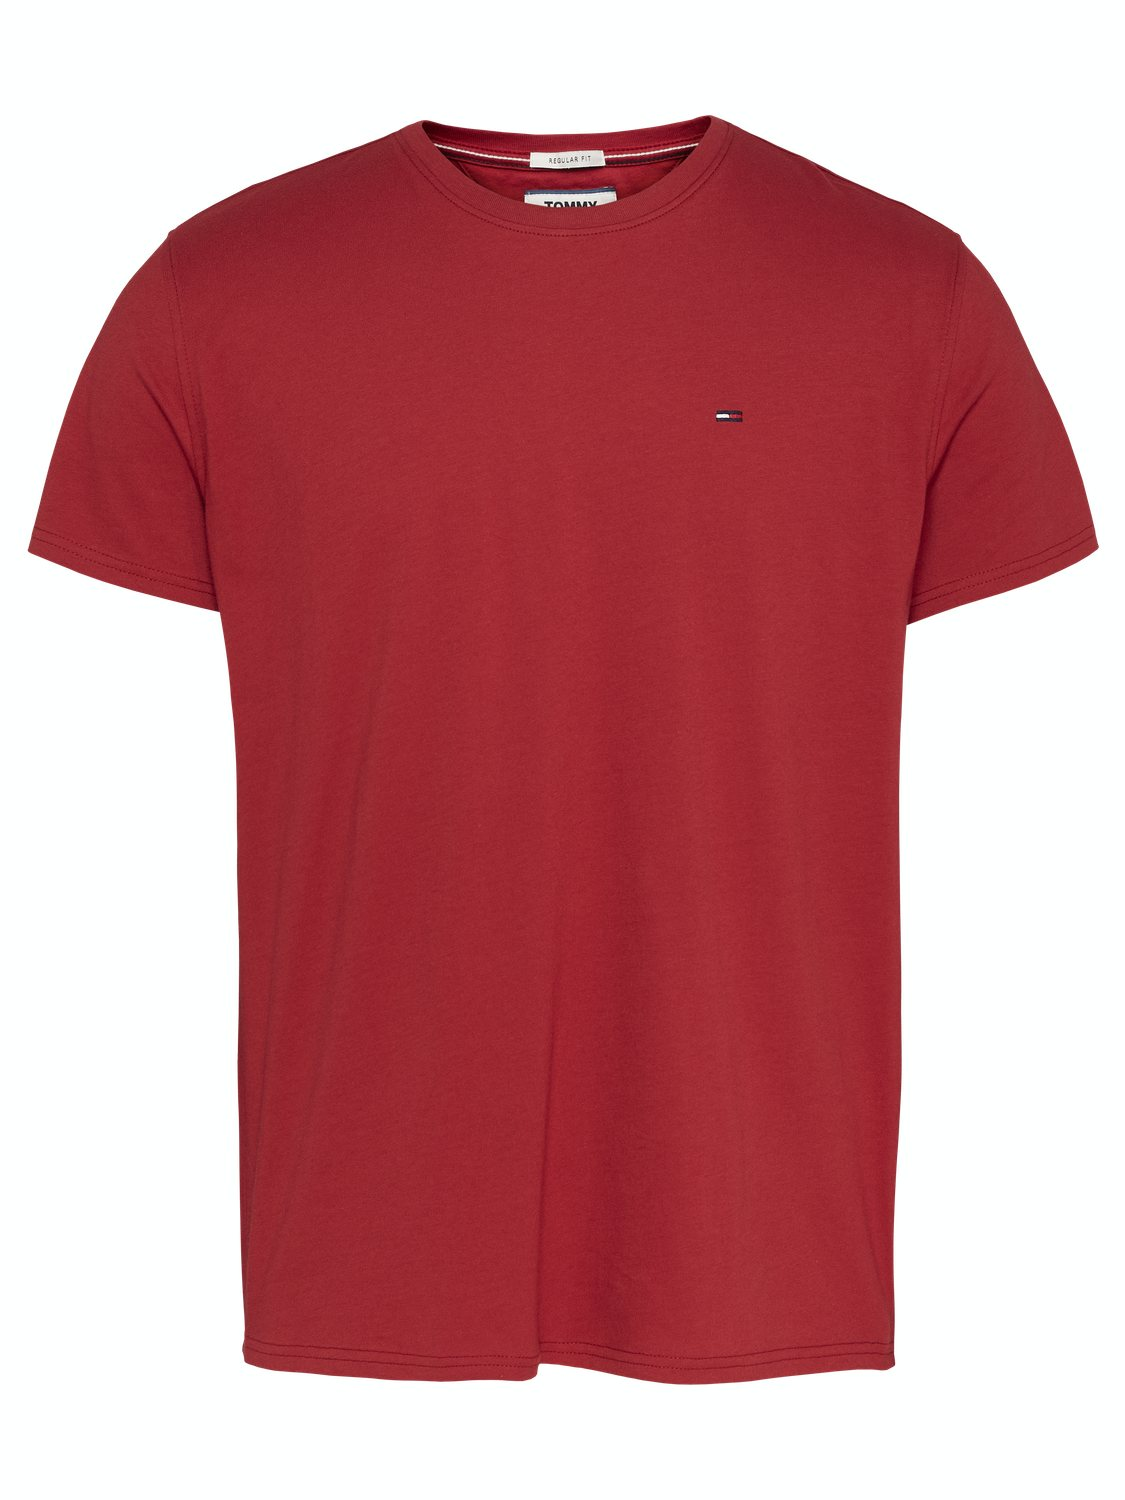 TJM solid T-Shirt - Wine Red | Gate36 Hobro